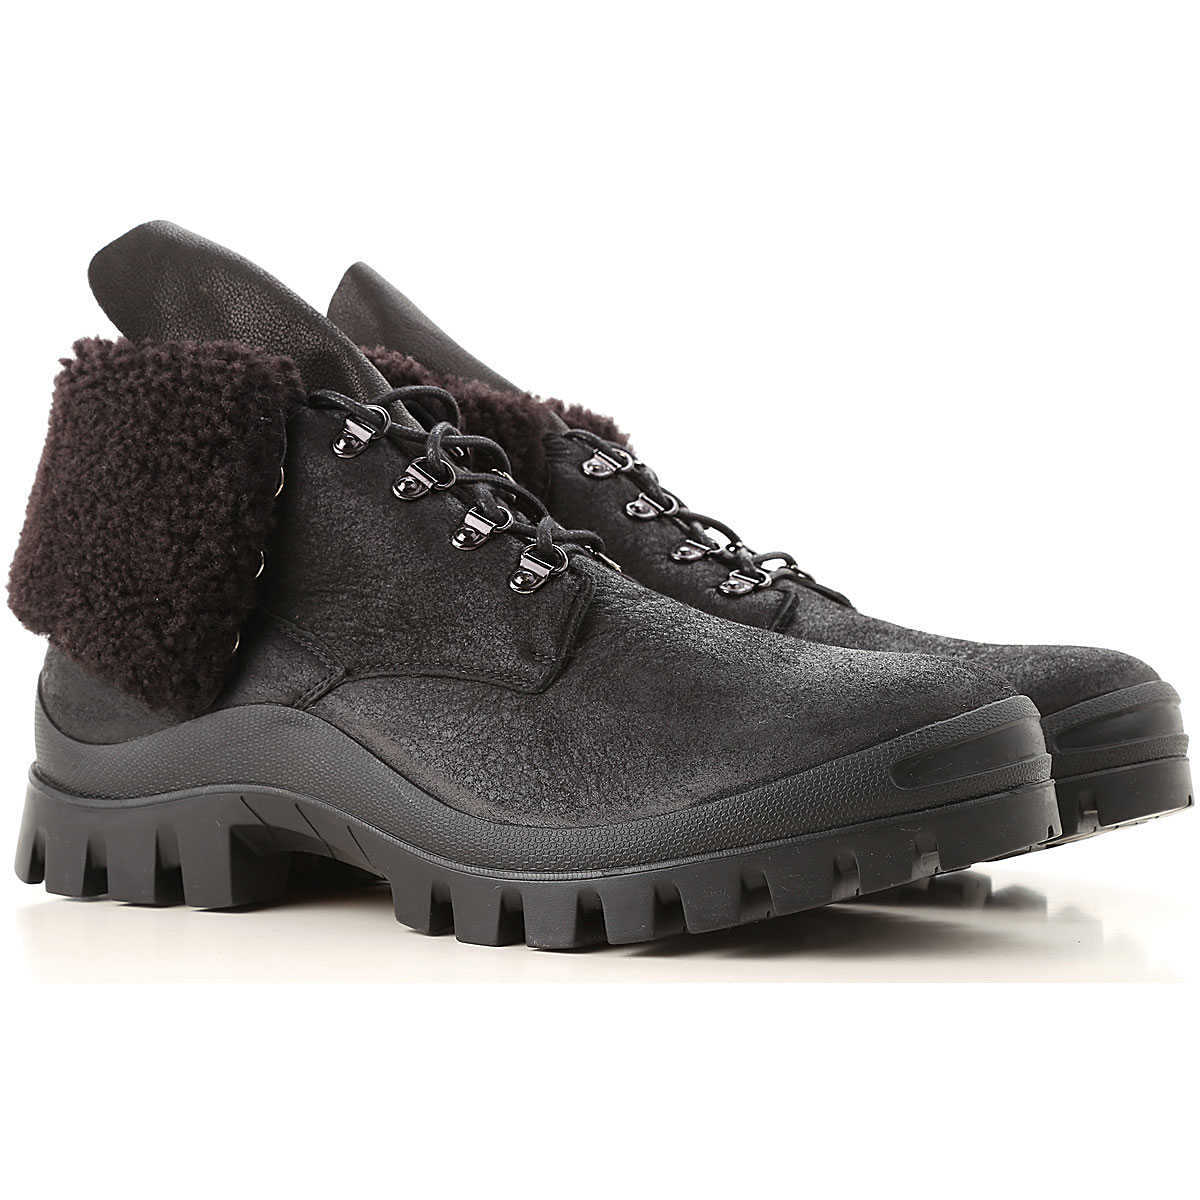 Henderson Boots for Men Booties On Sale DK - GOOFASH - Mens BOOTS